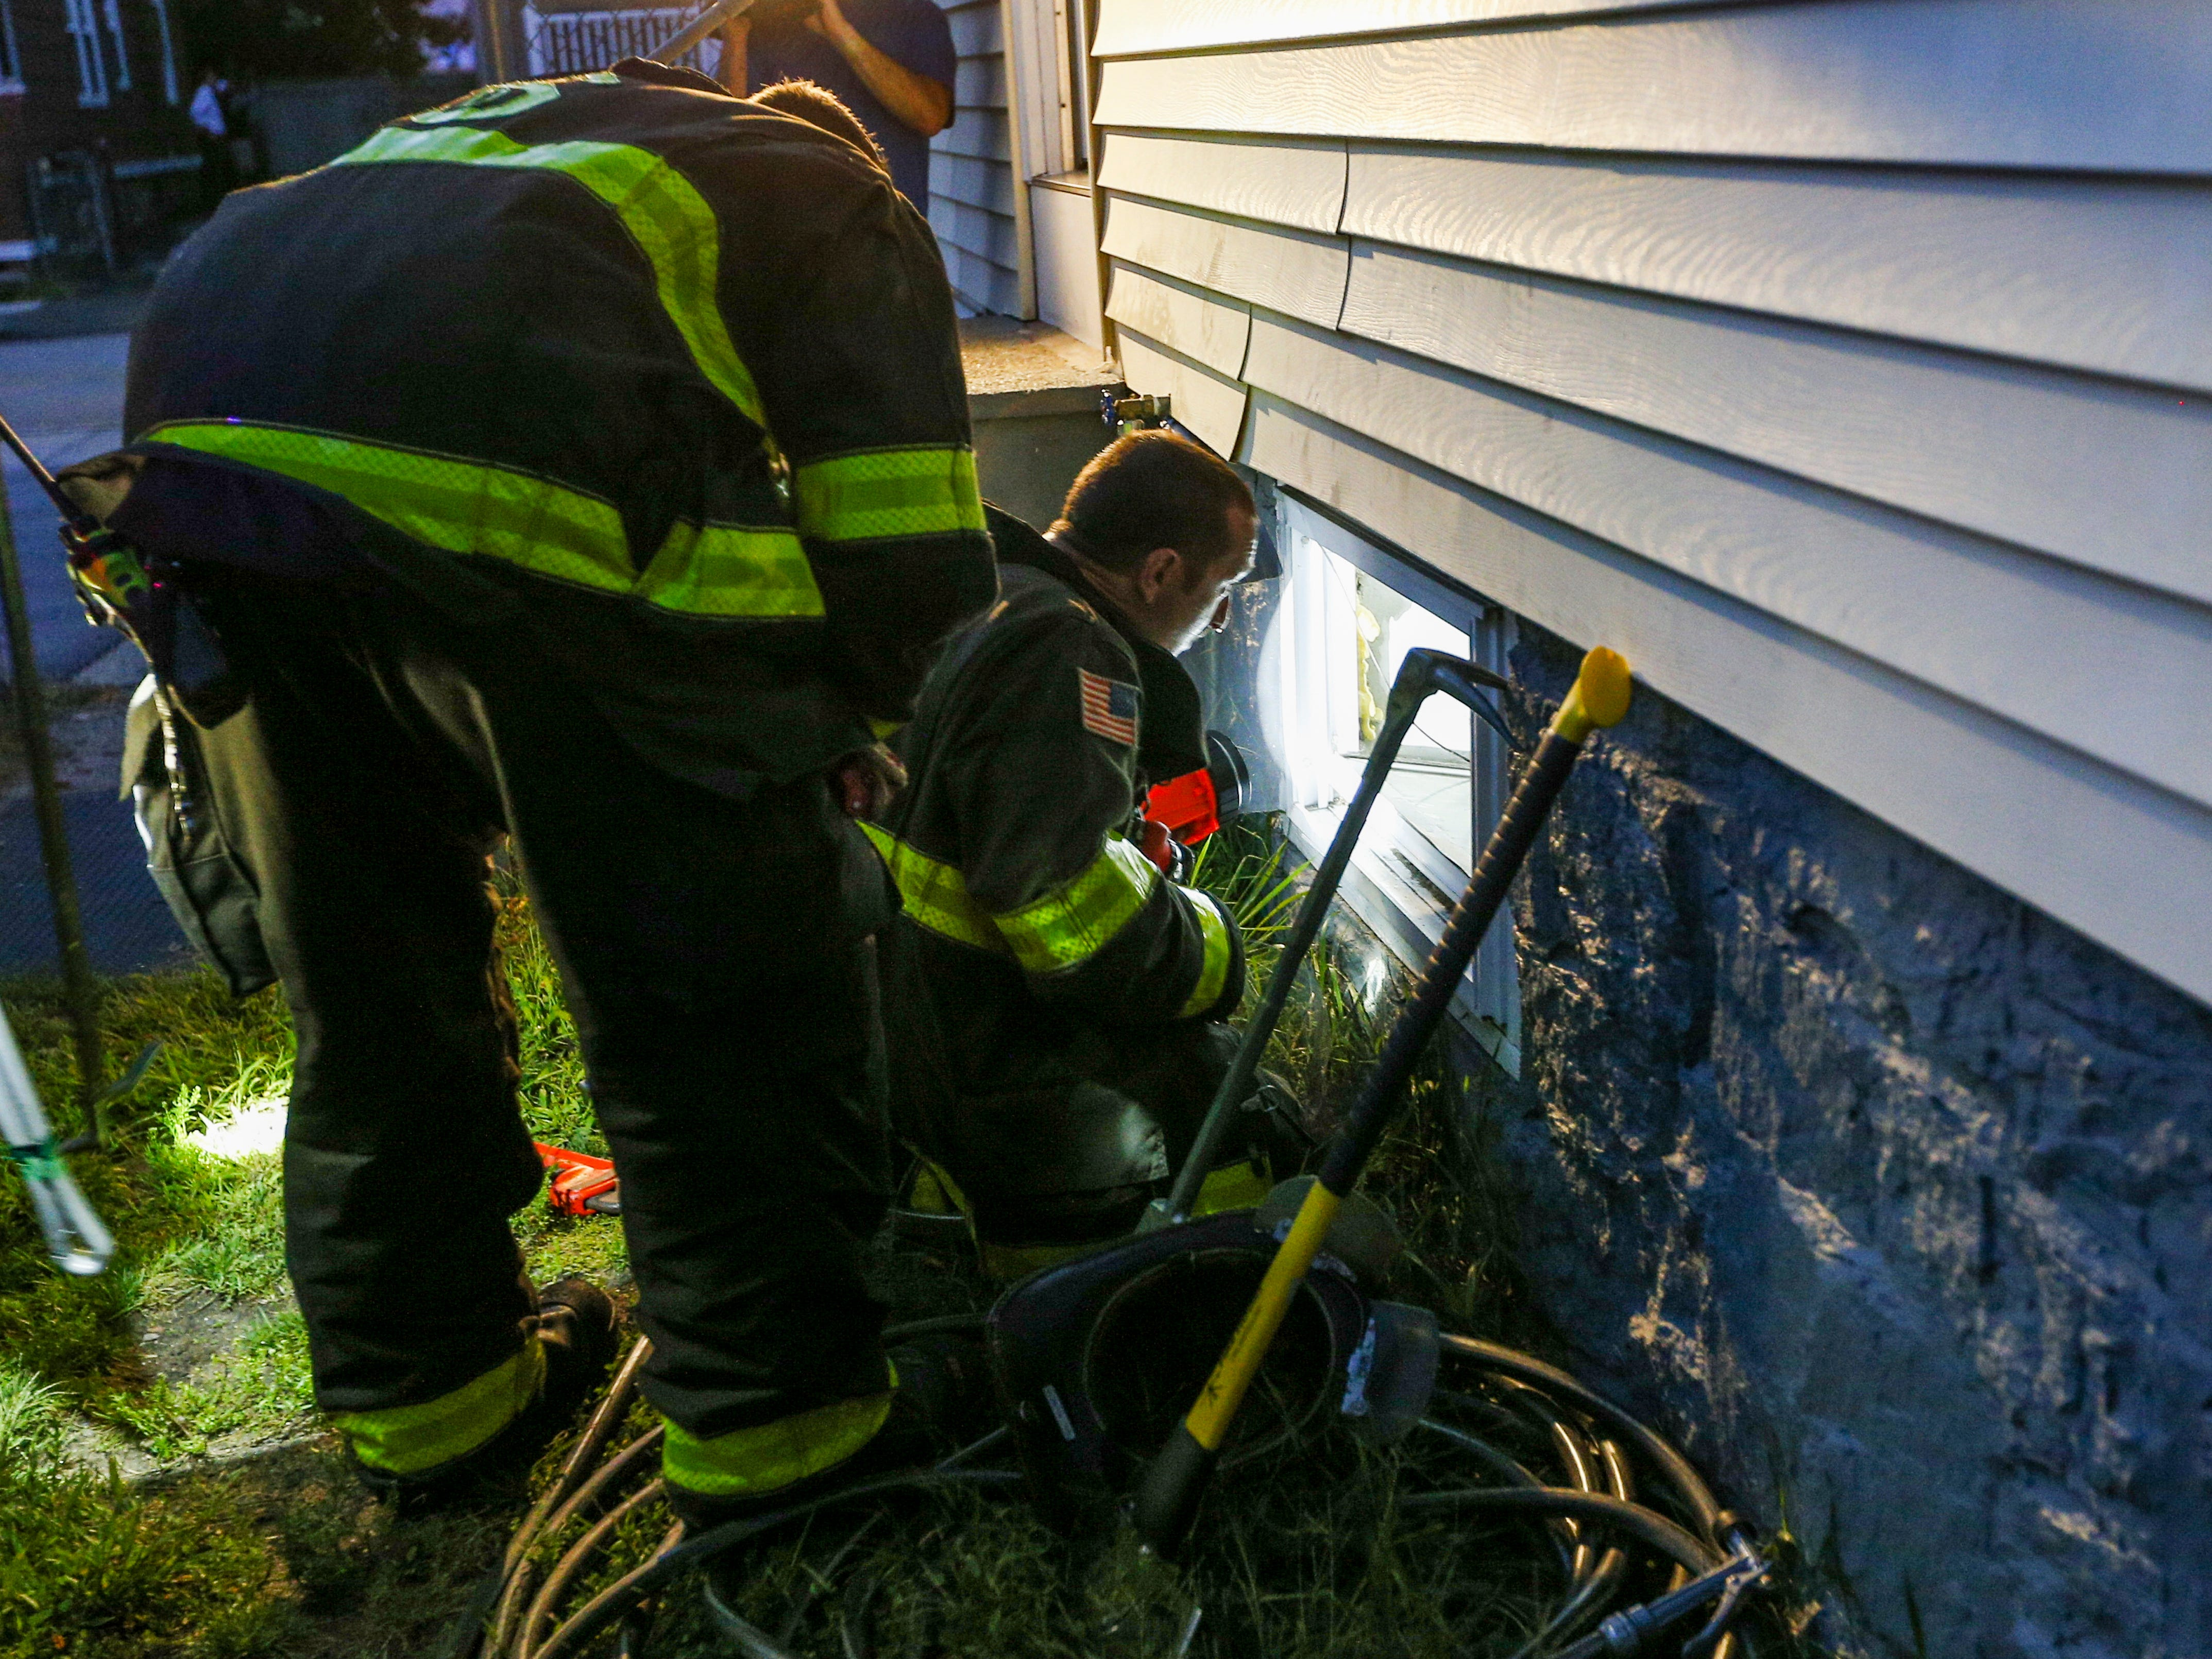 Firefighters gain entrance into a house through a basement window to check the gas line in Lawrence, Mass.